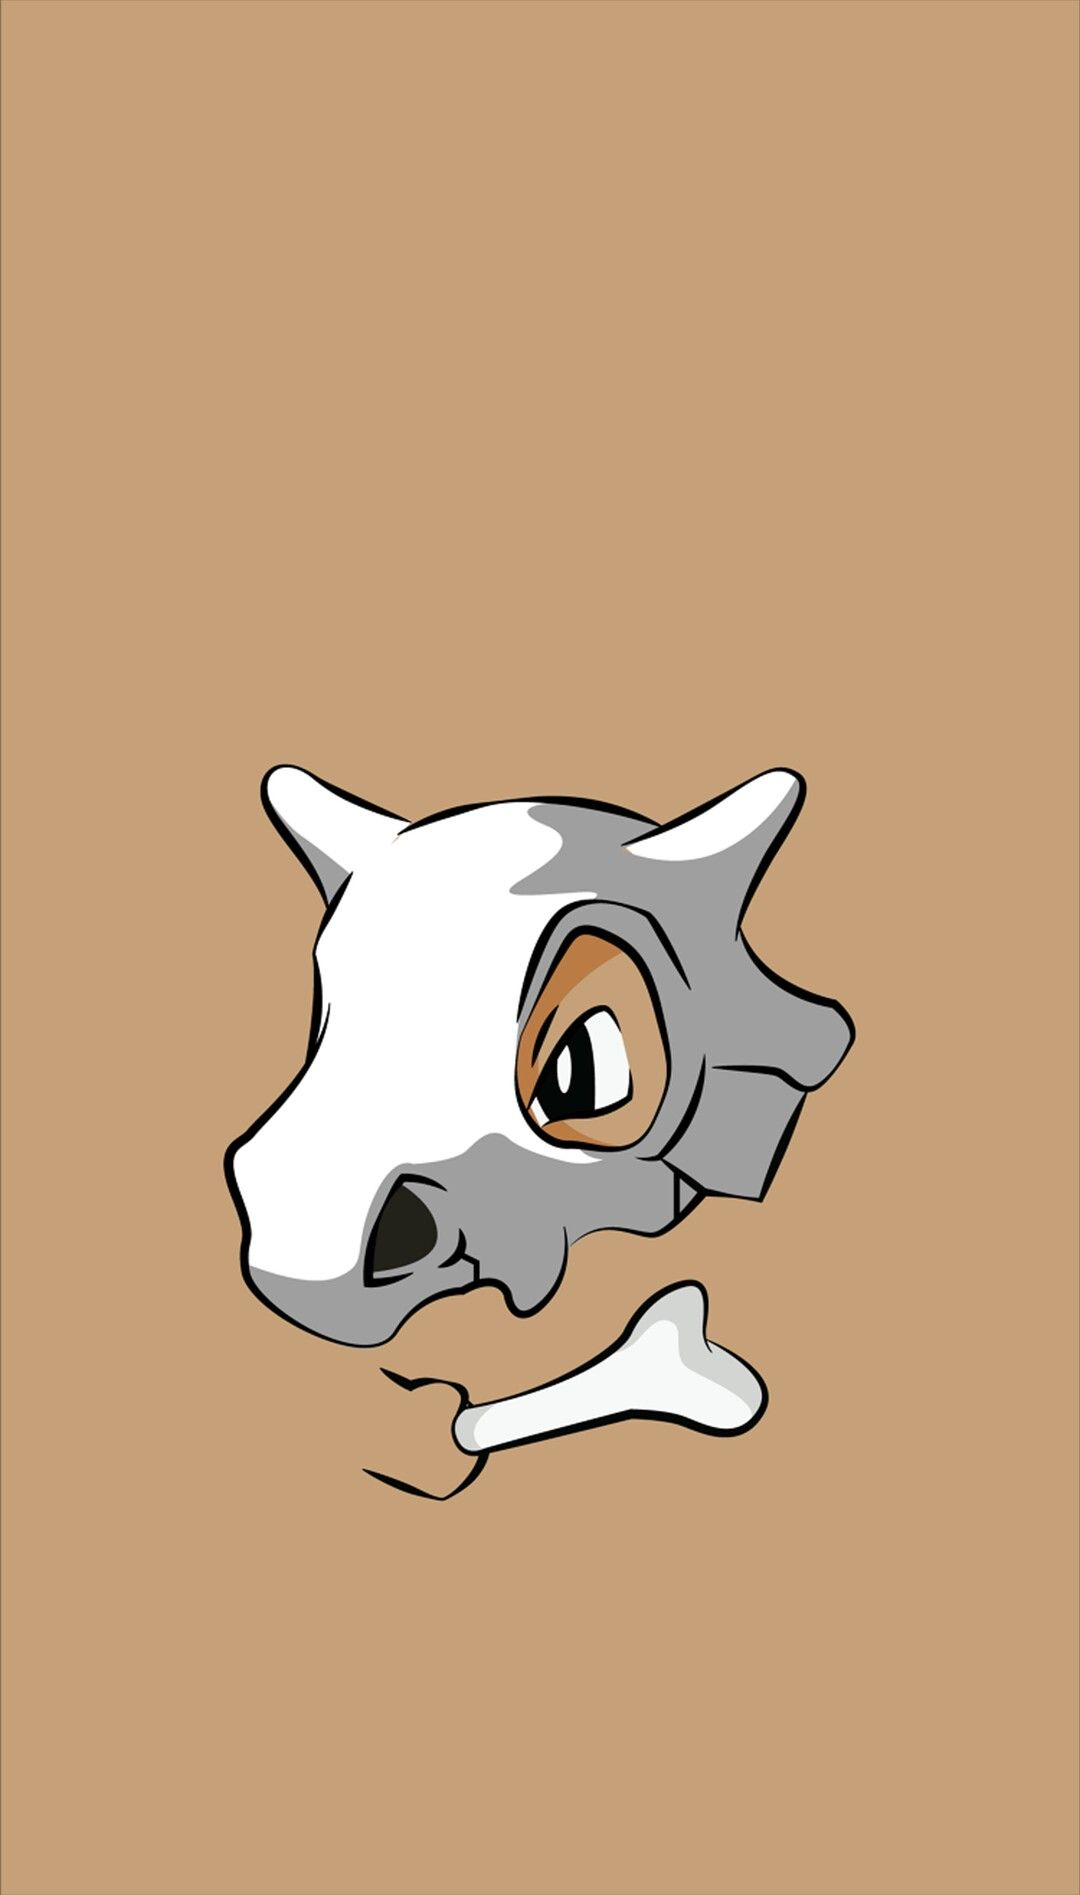 Cubone wallpaper ❤ | planos de fundo | Pinterest | Wallpaper and …